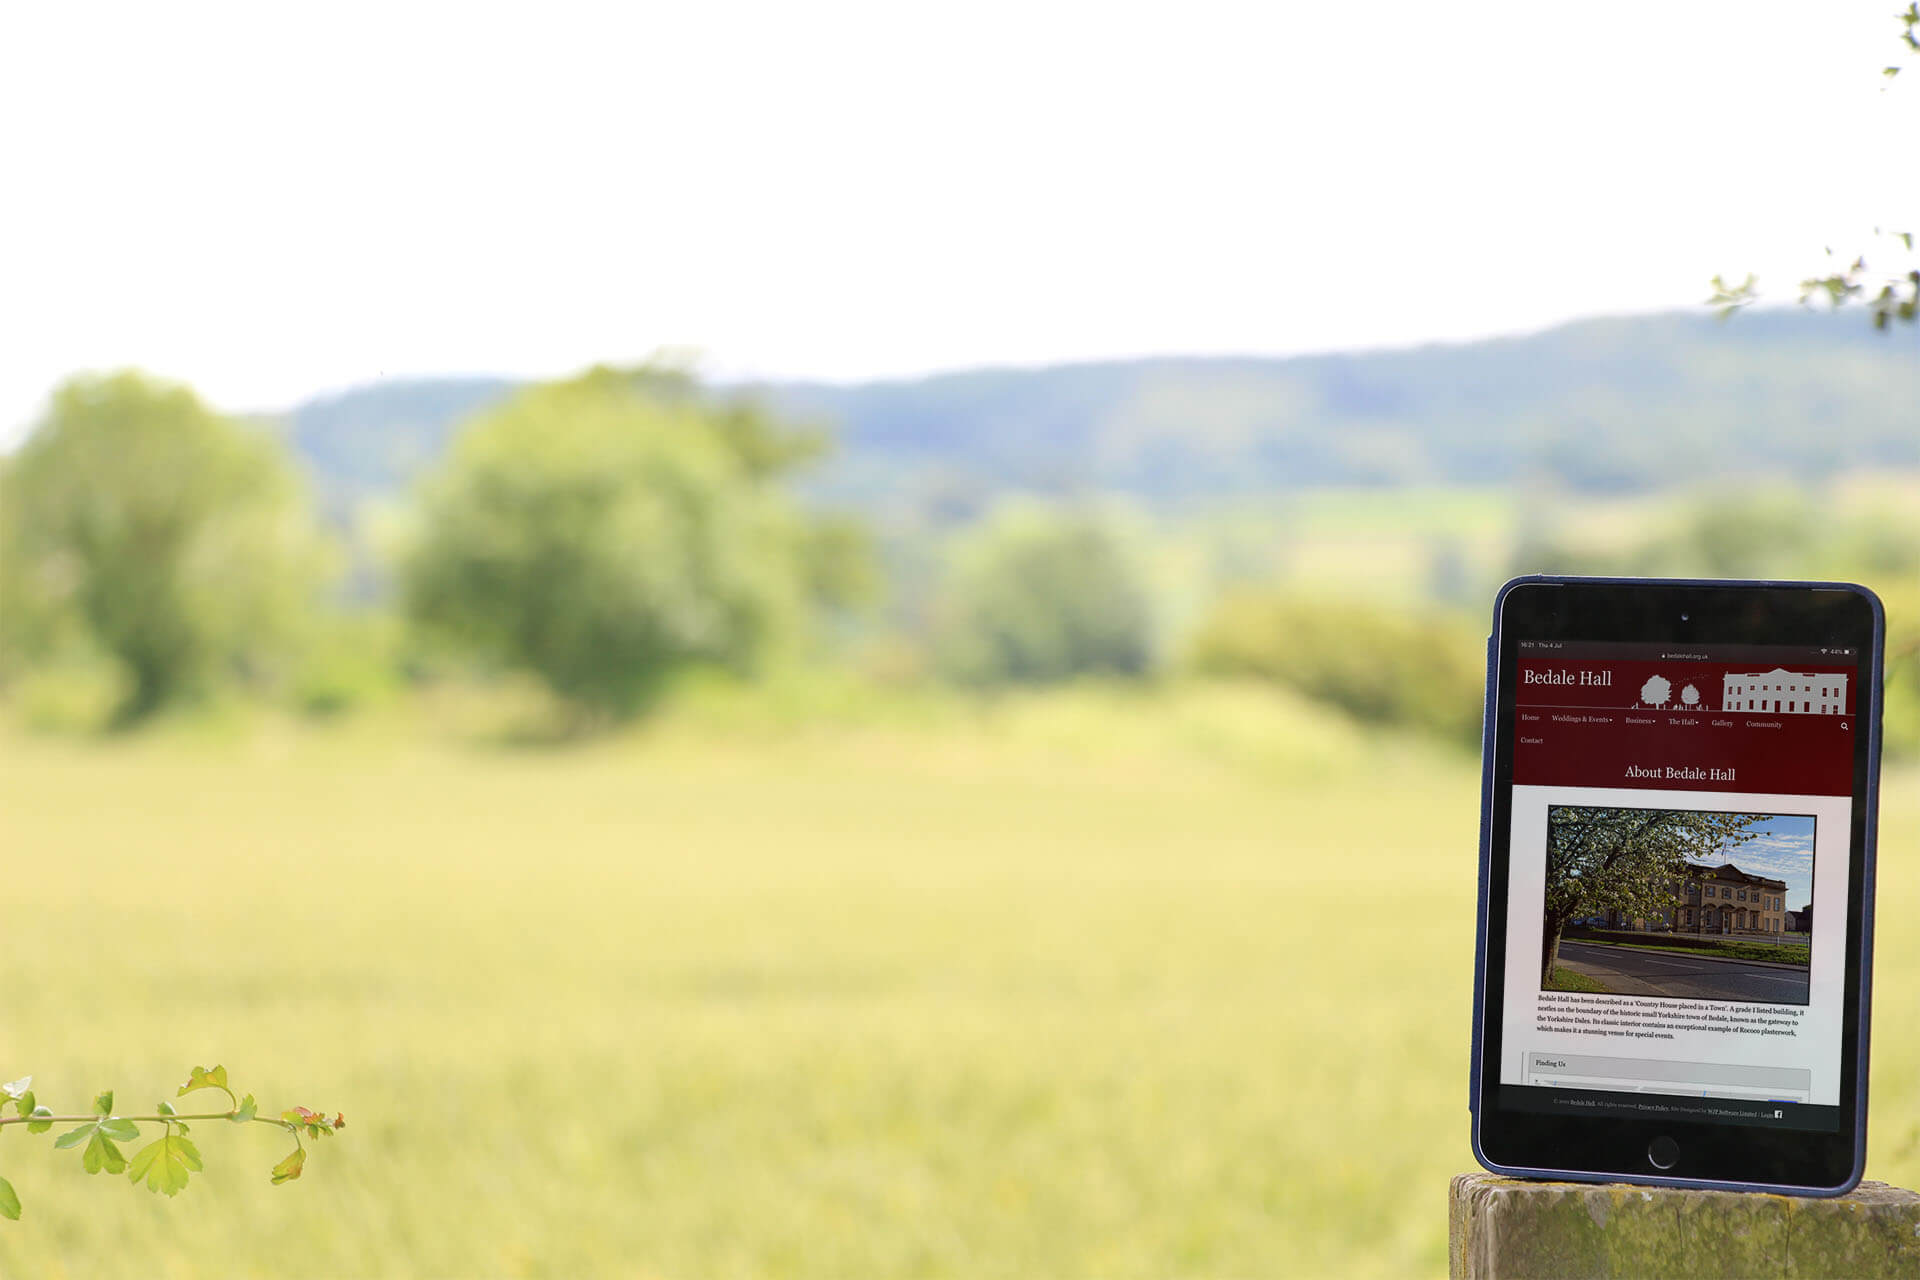 iPad standing on wooden post overlooking a field